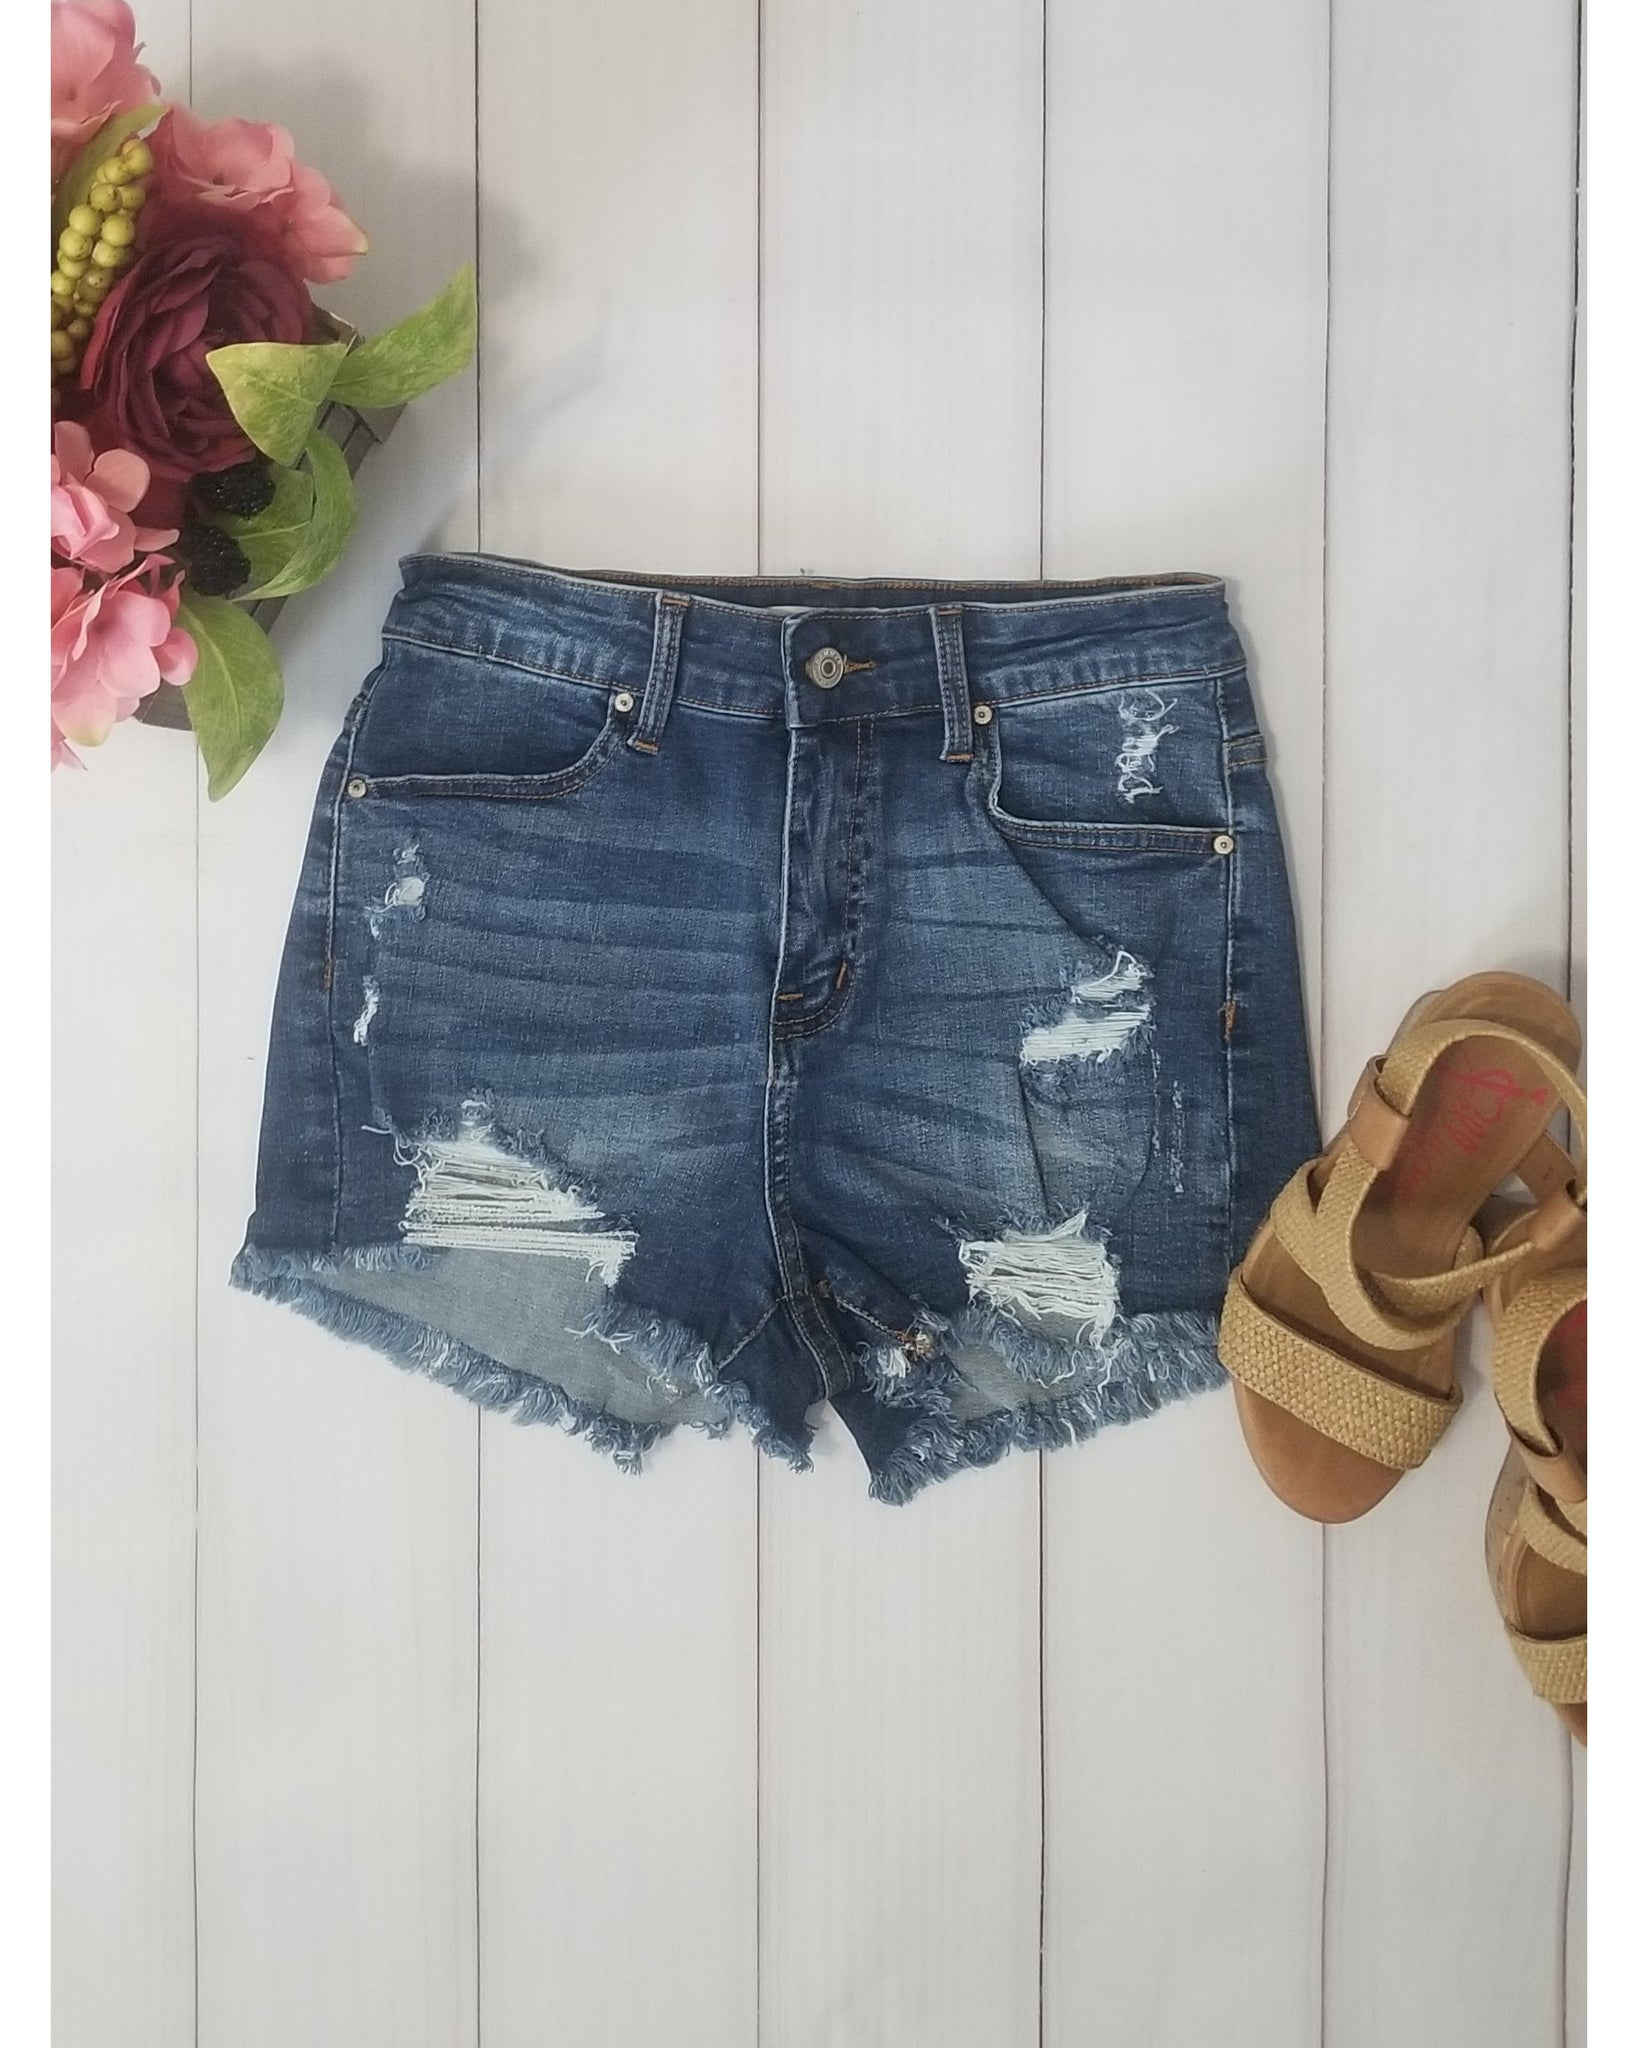 Hammer Jeans High Rise Distressed Jean Shorts with Frayed Hem - Dark Denim - Essentially Elegant